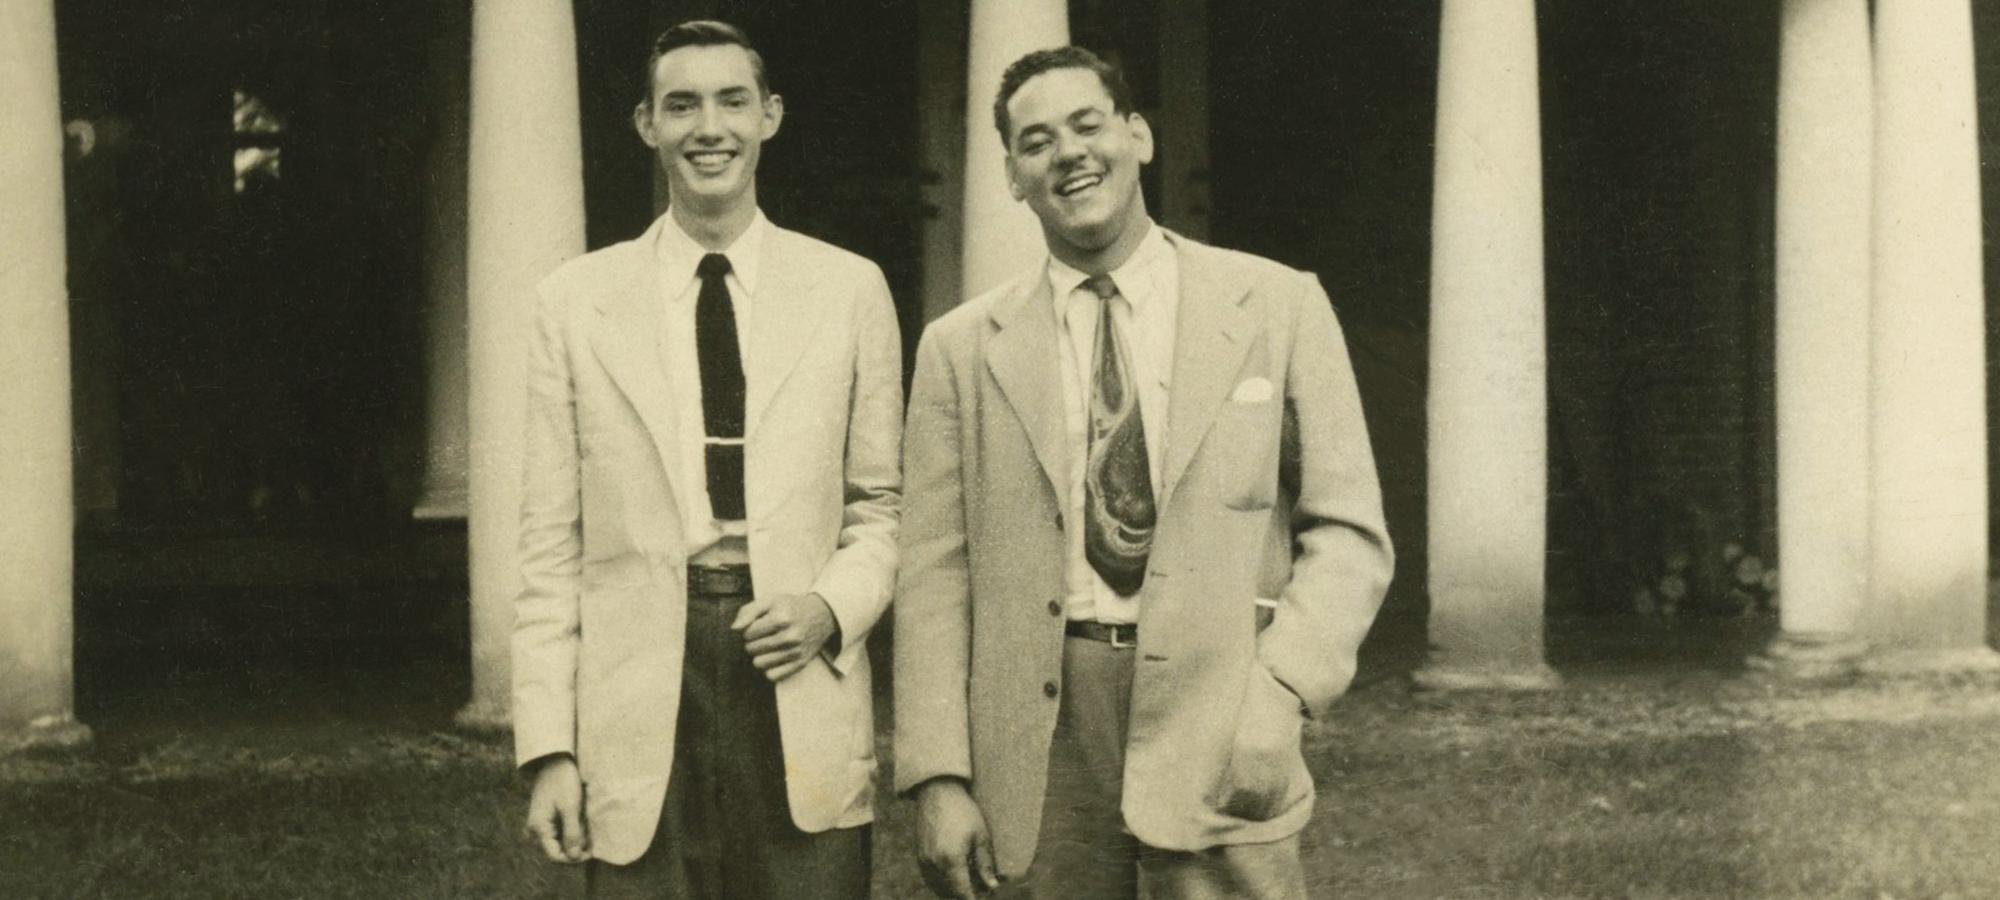 Gregory Swanson, right, on the University of Virginia Lawn